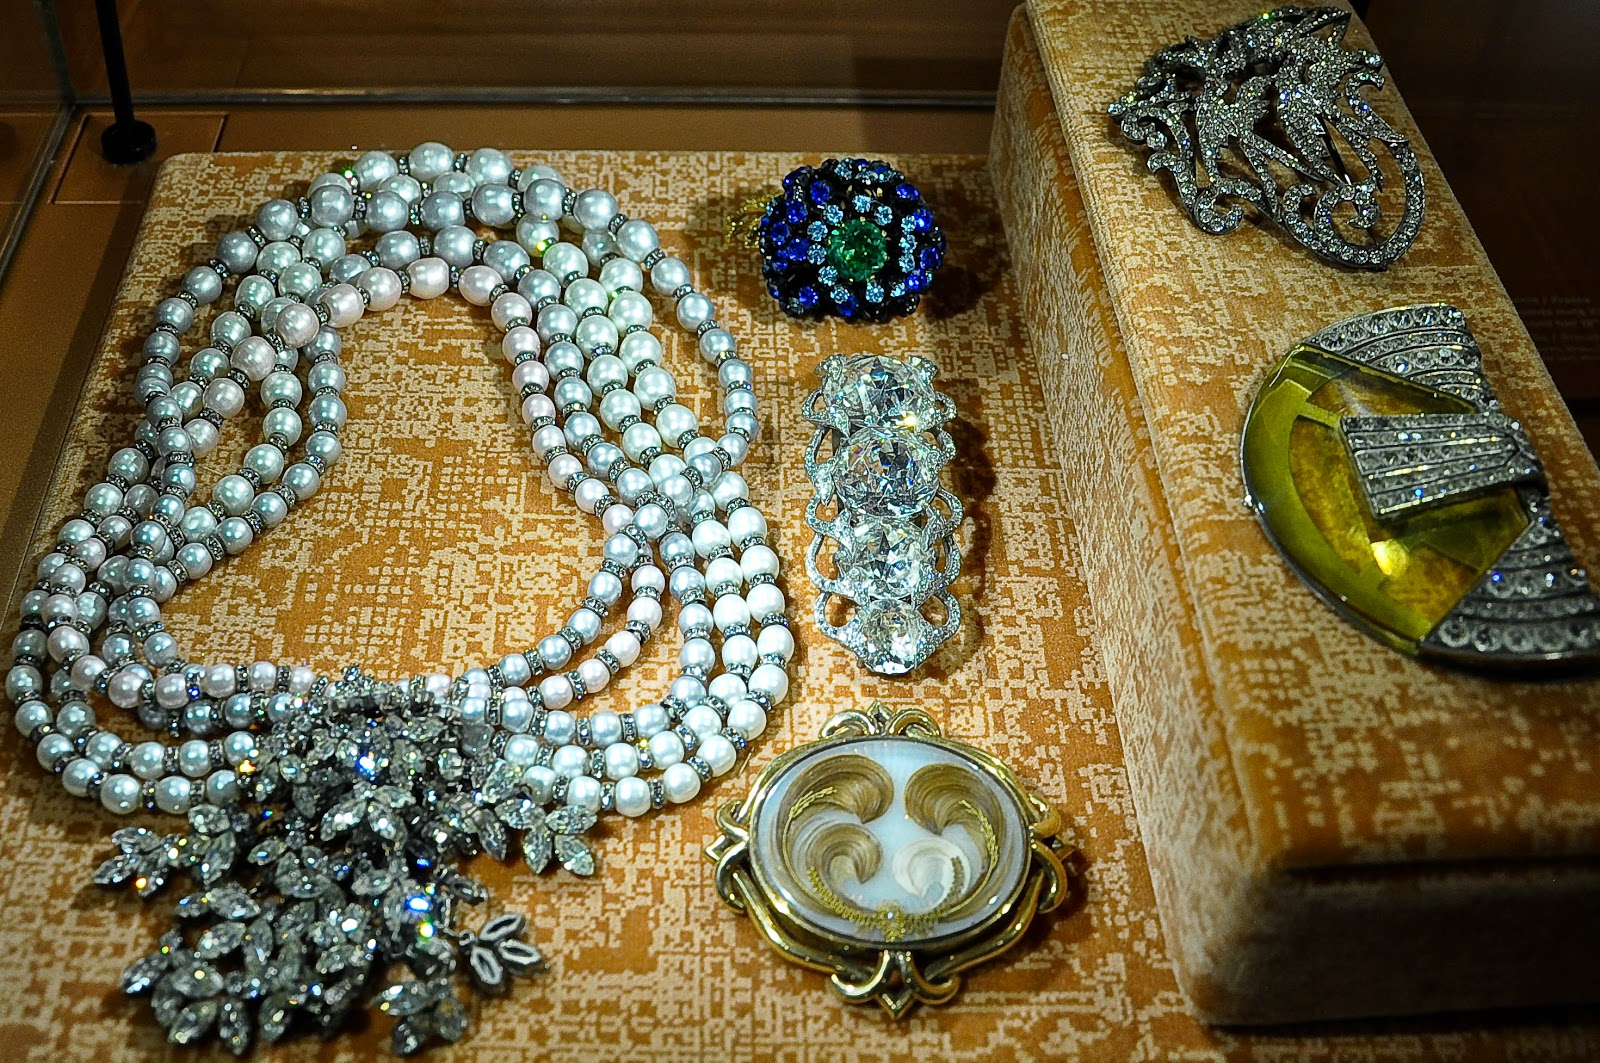 Fashion designer jewellery pieces in the Fashion room in the Museum of the Jewellery in Vicenza